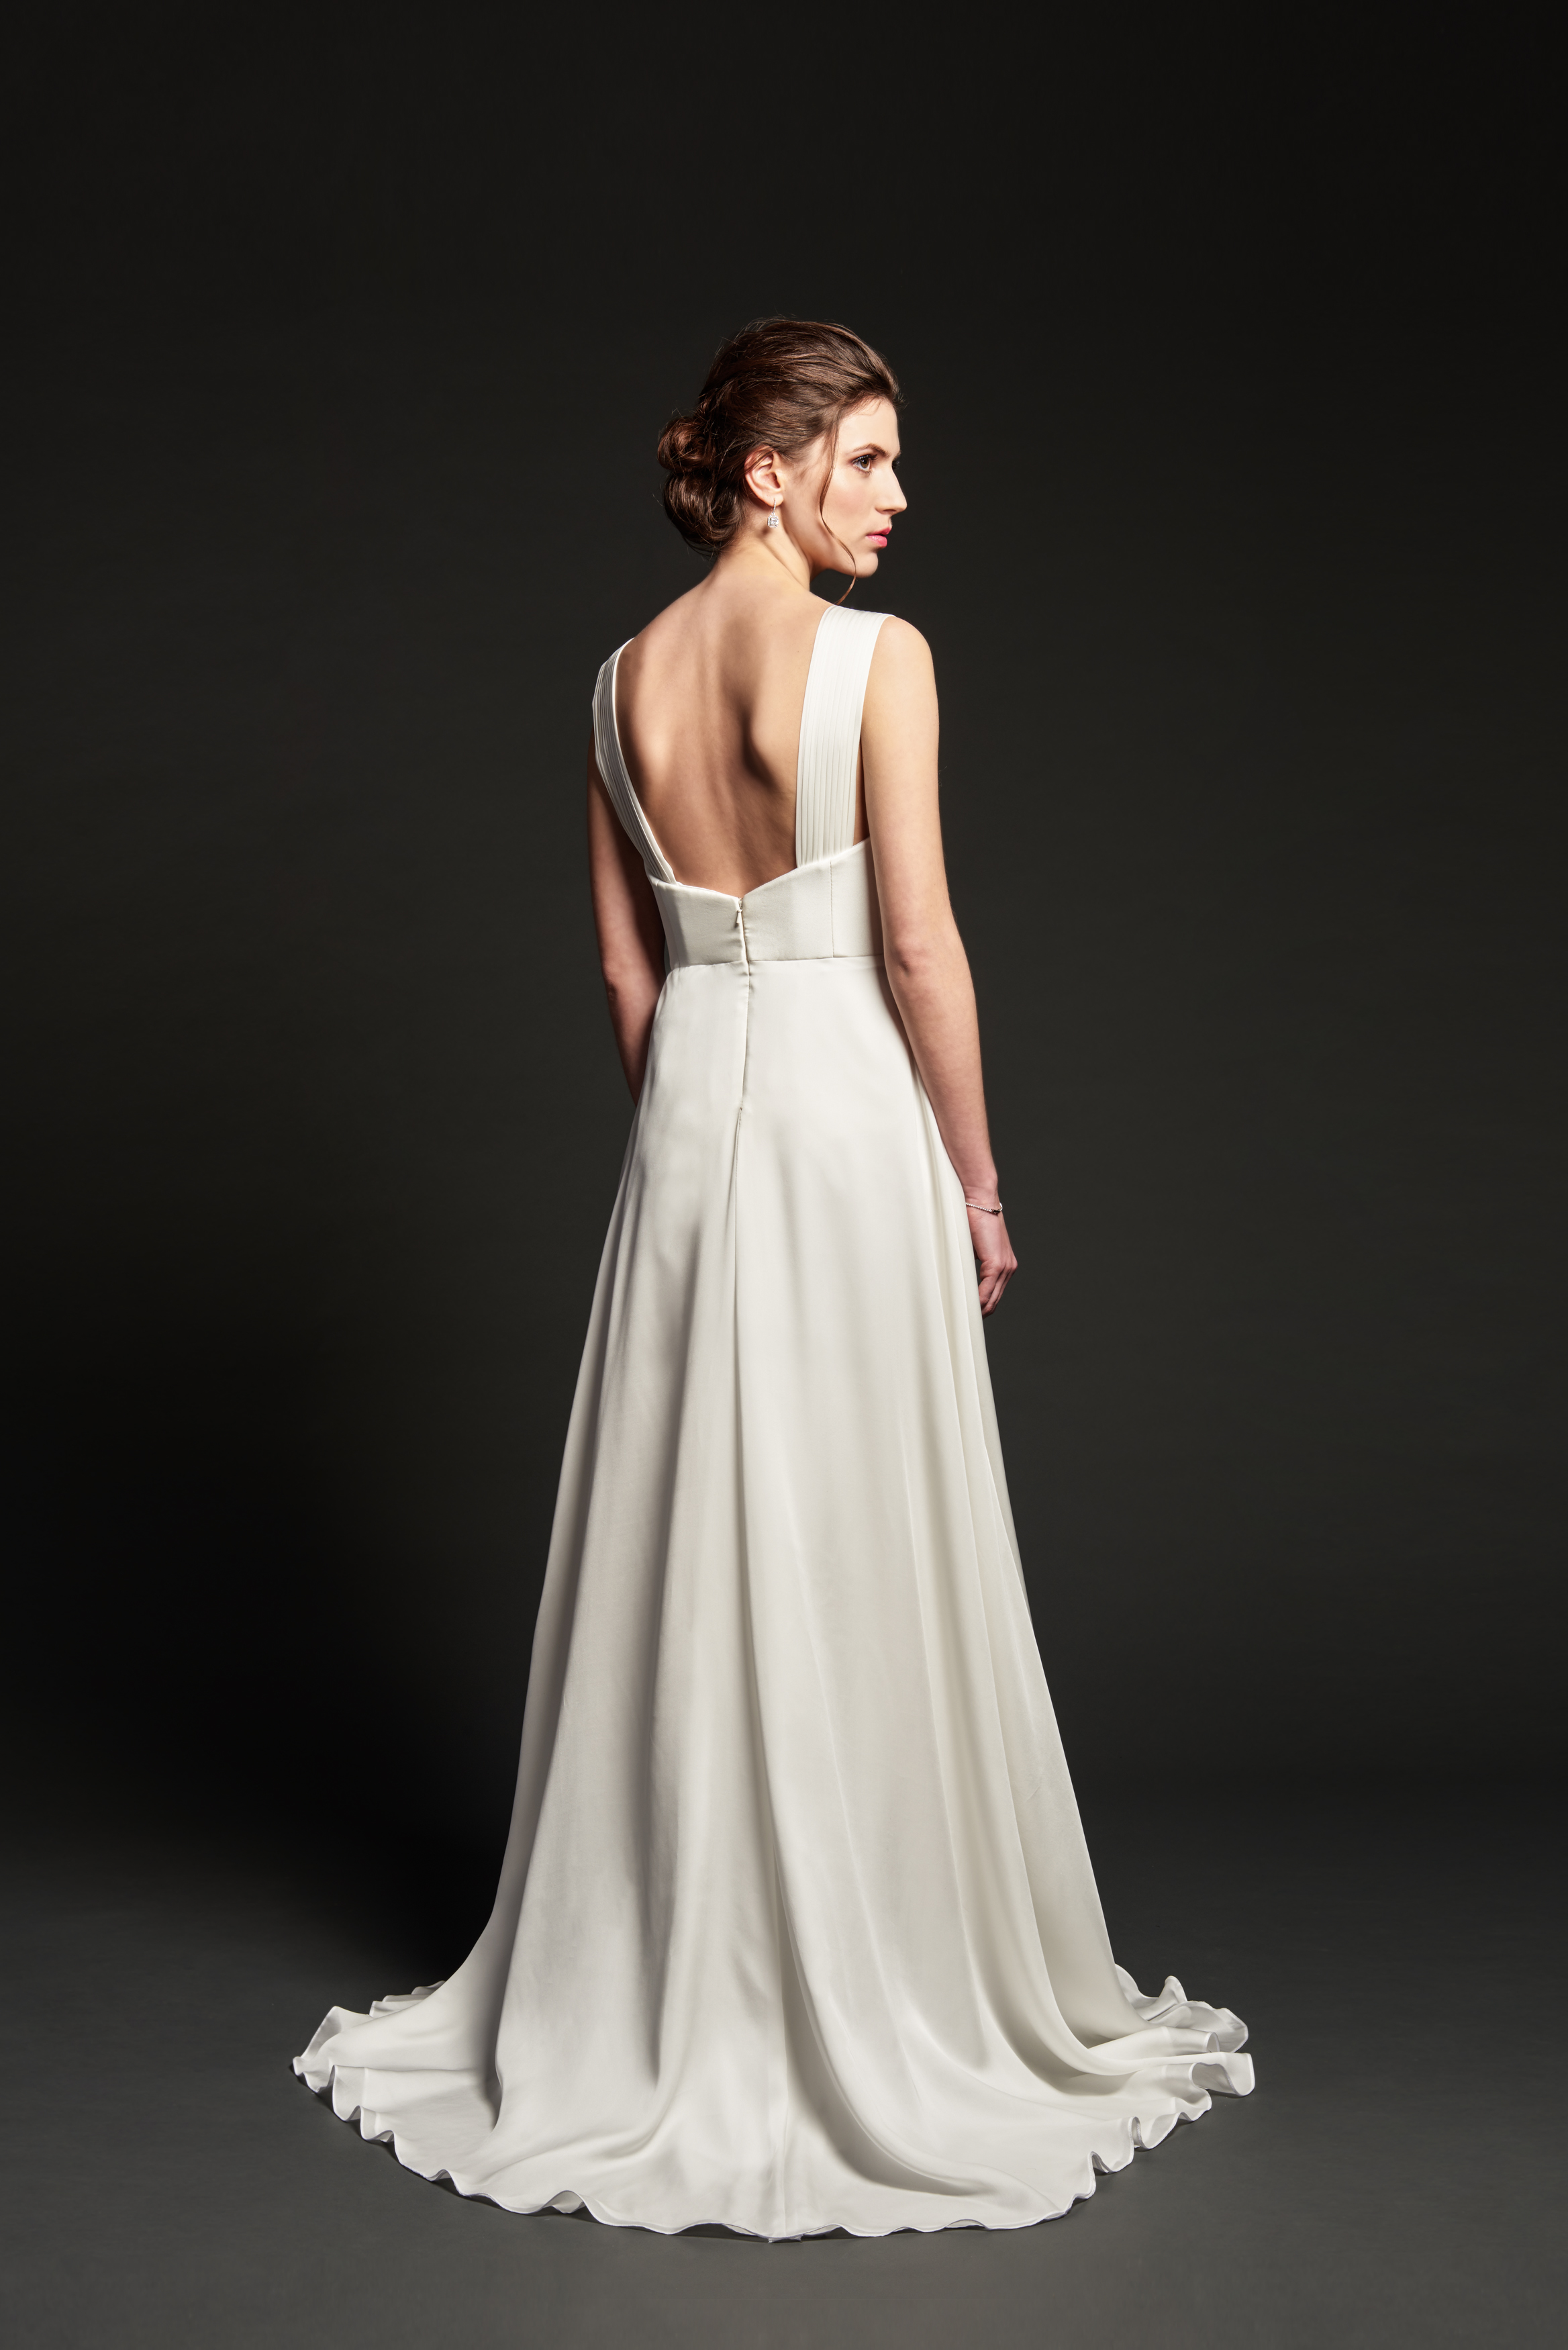 160213_GEMMA LEAKEY BRIDAL - DRESS 04-02.jpg